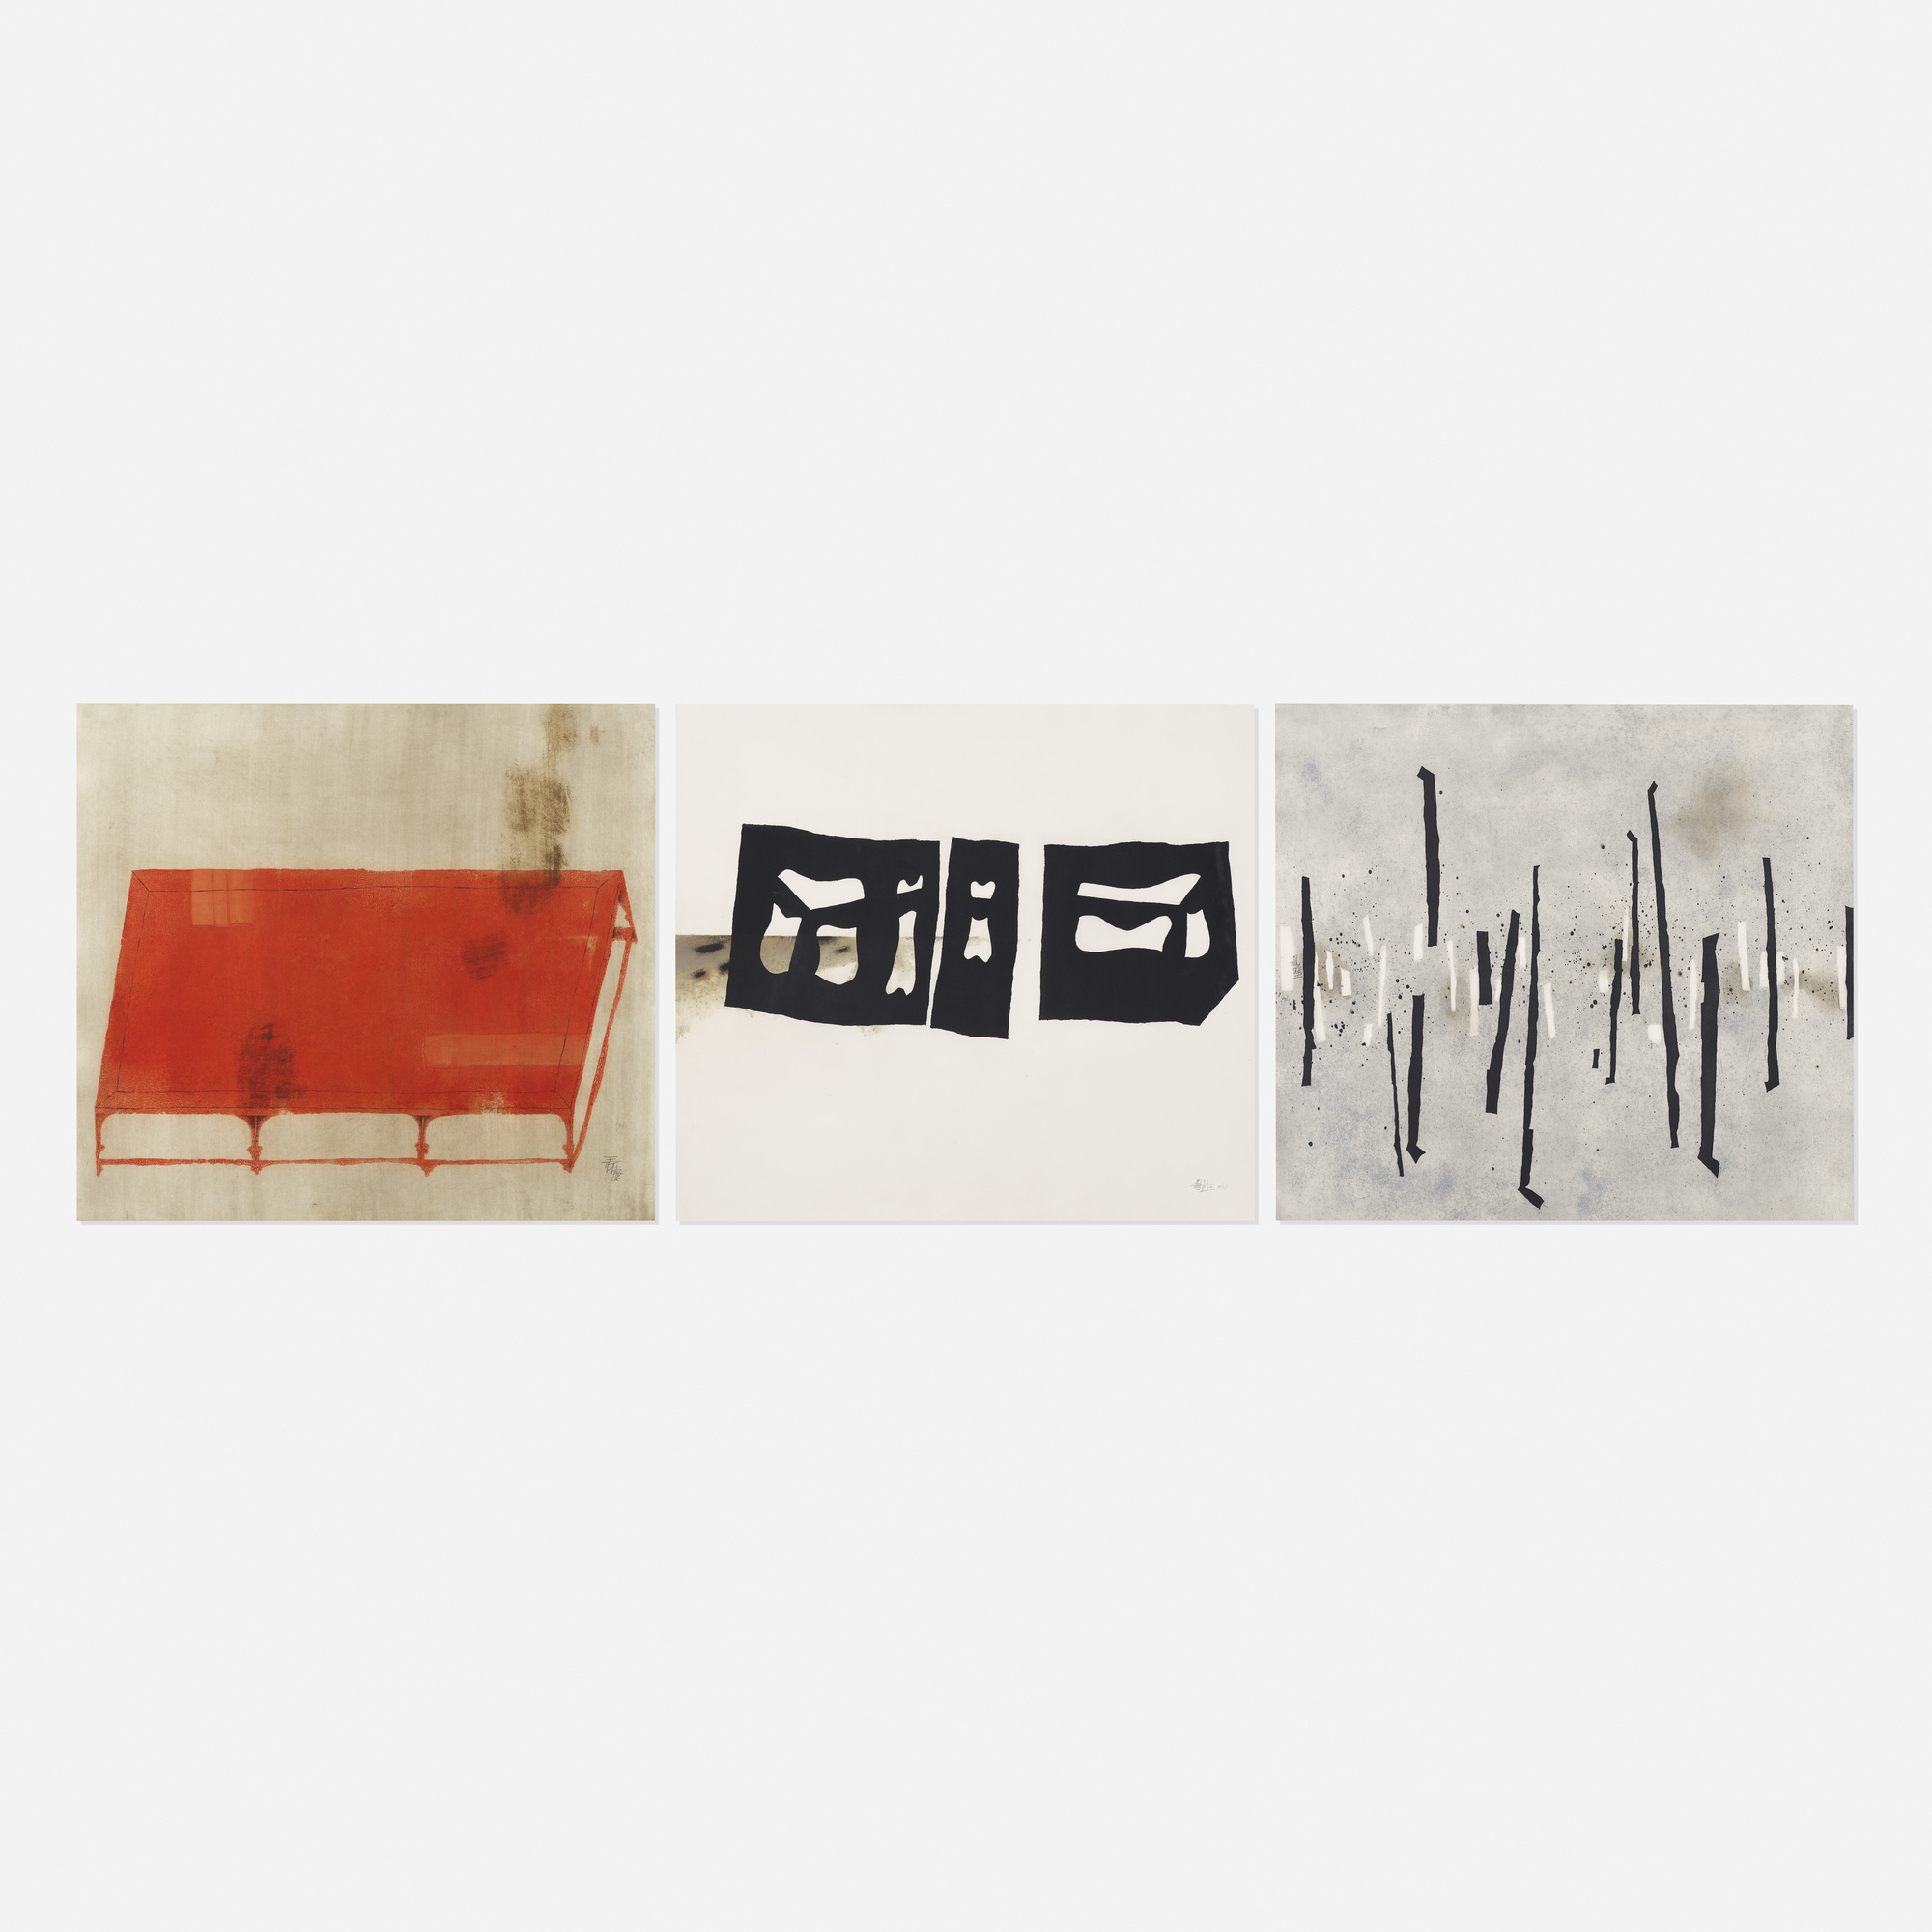 209: Wang Huaiqing / Daybed 1, Chinese Couch and Walking (three works) (1 of 1)